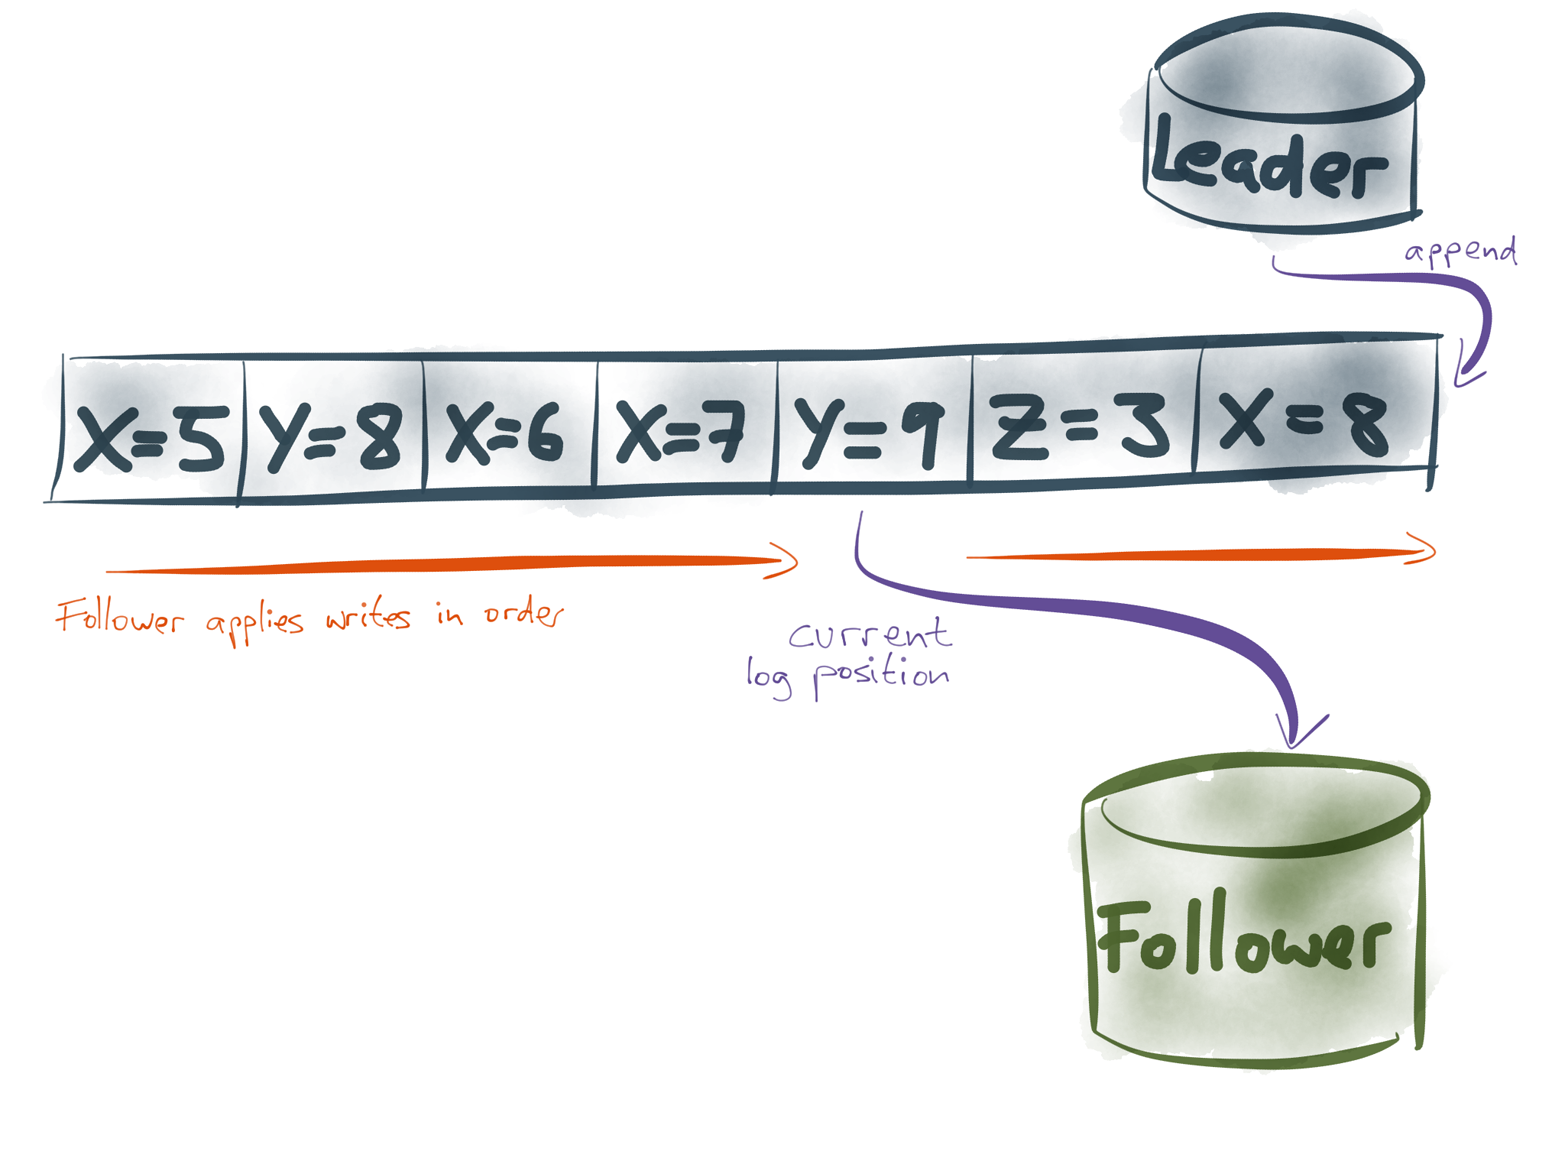 The follower applies writes in the order in which they appear in the replication log.